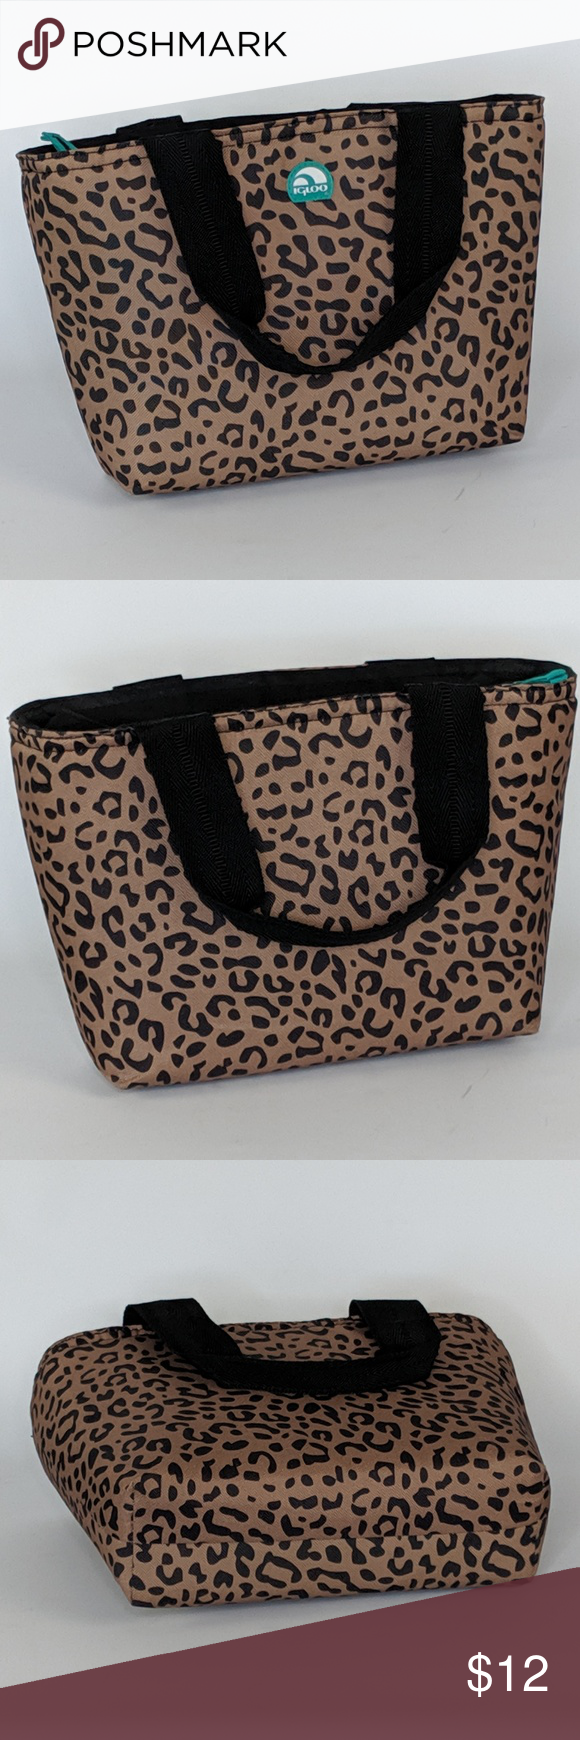 Lunch Box Insulated Bag